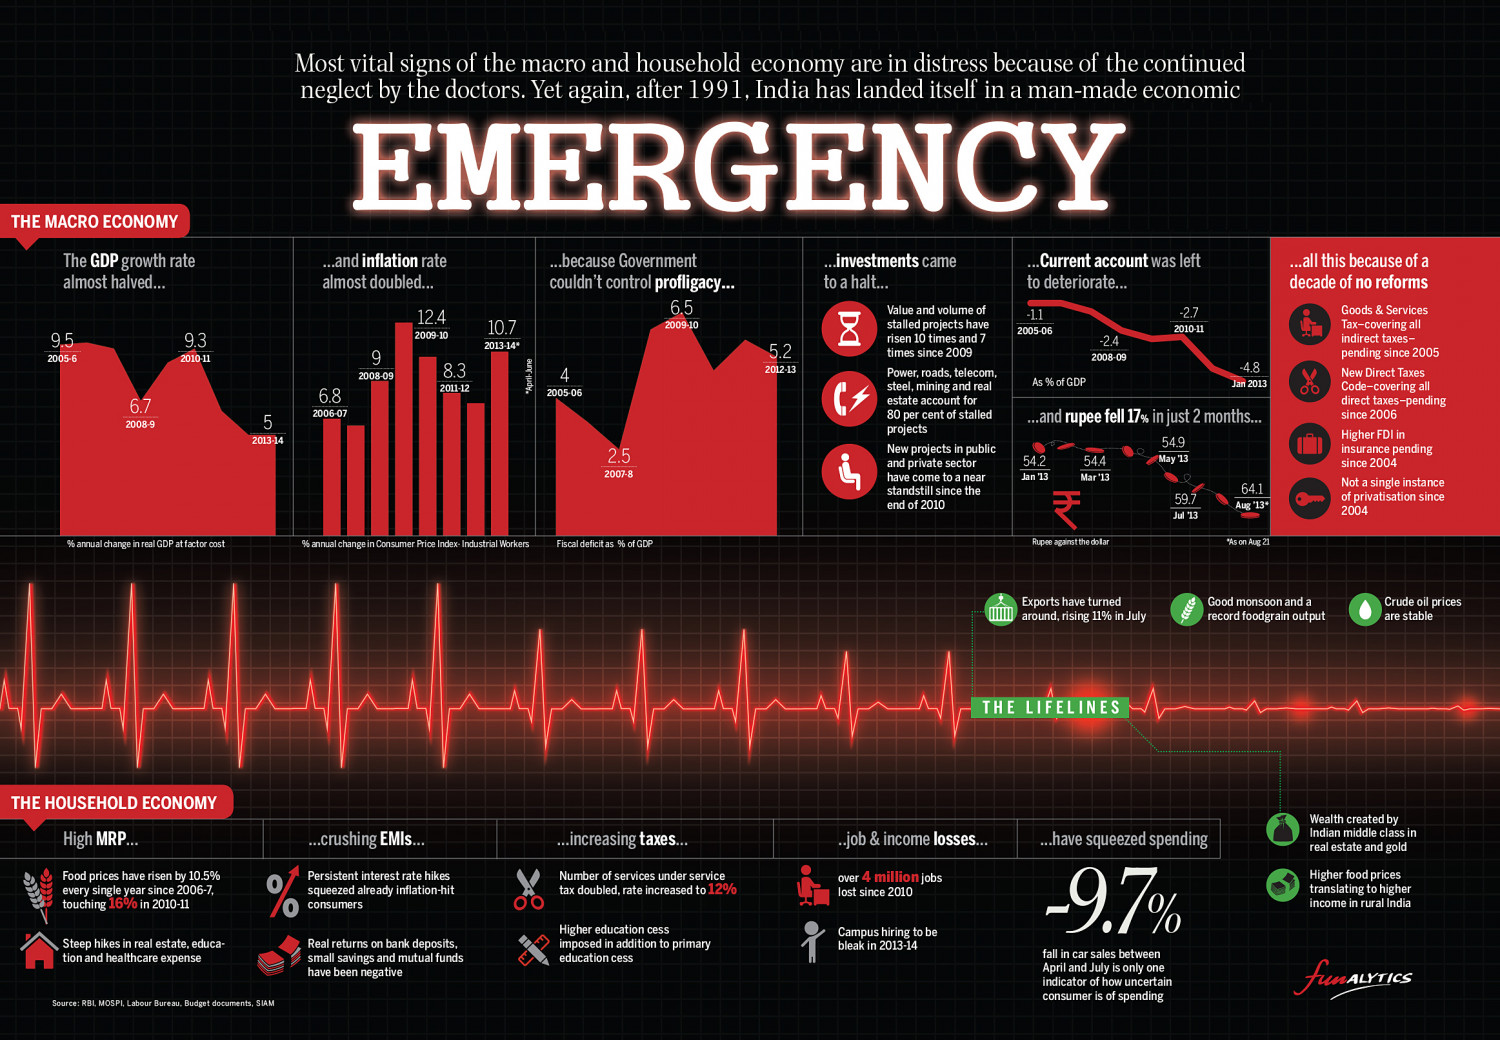 Economic Emergency in India Infographic